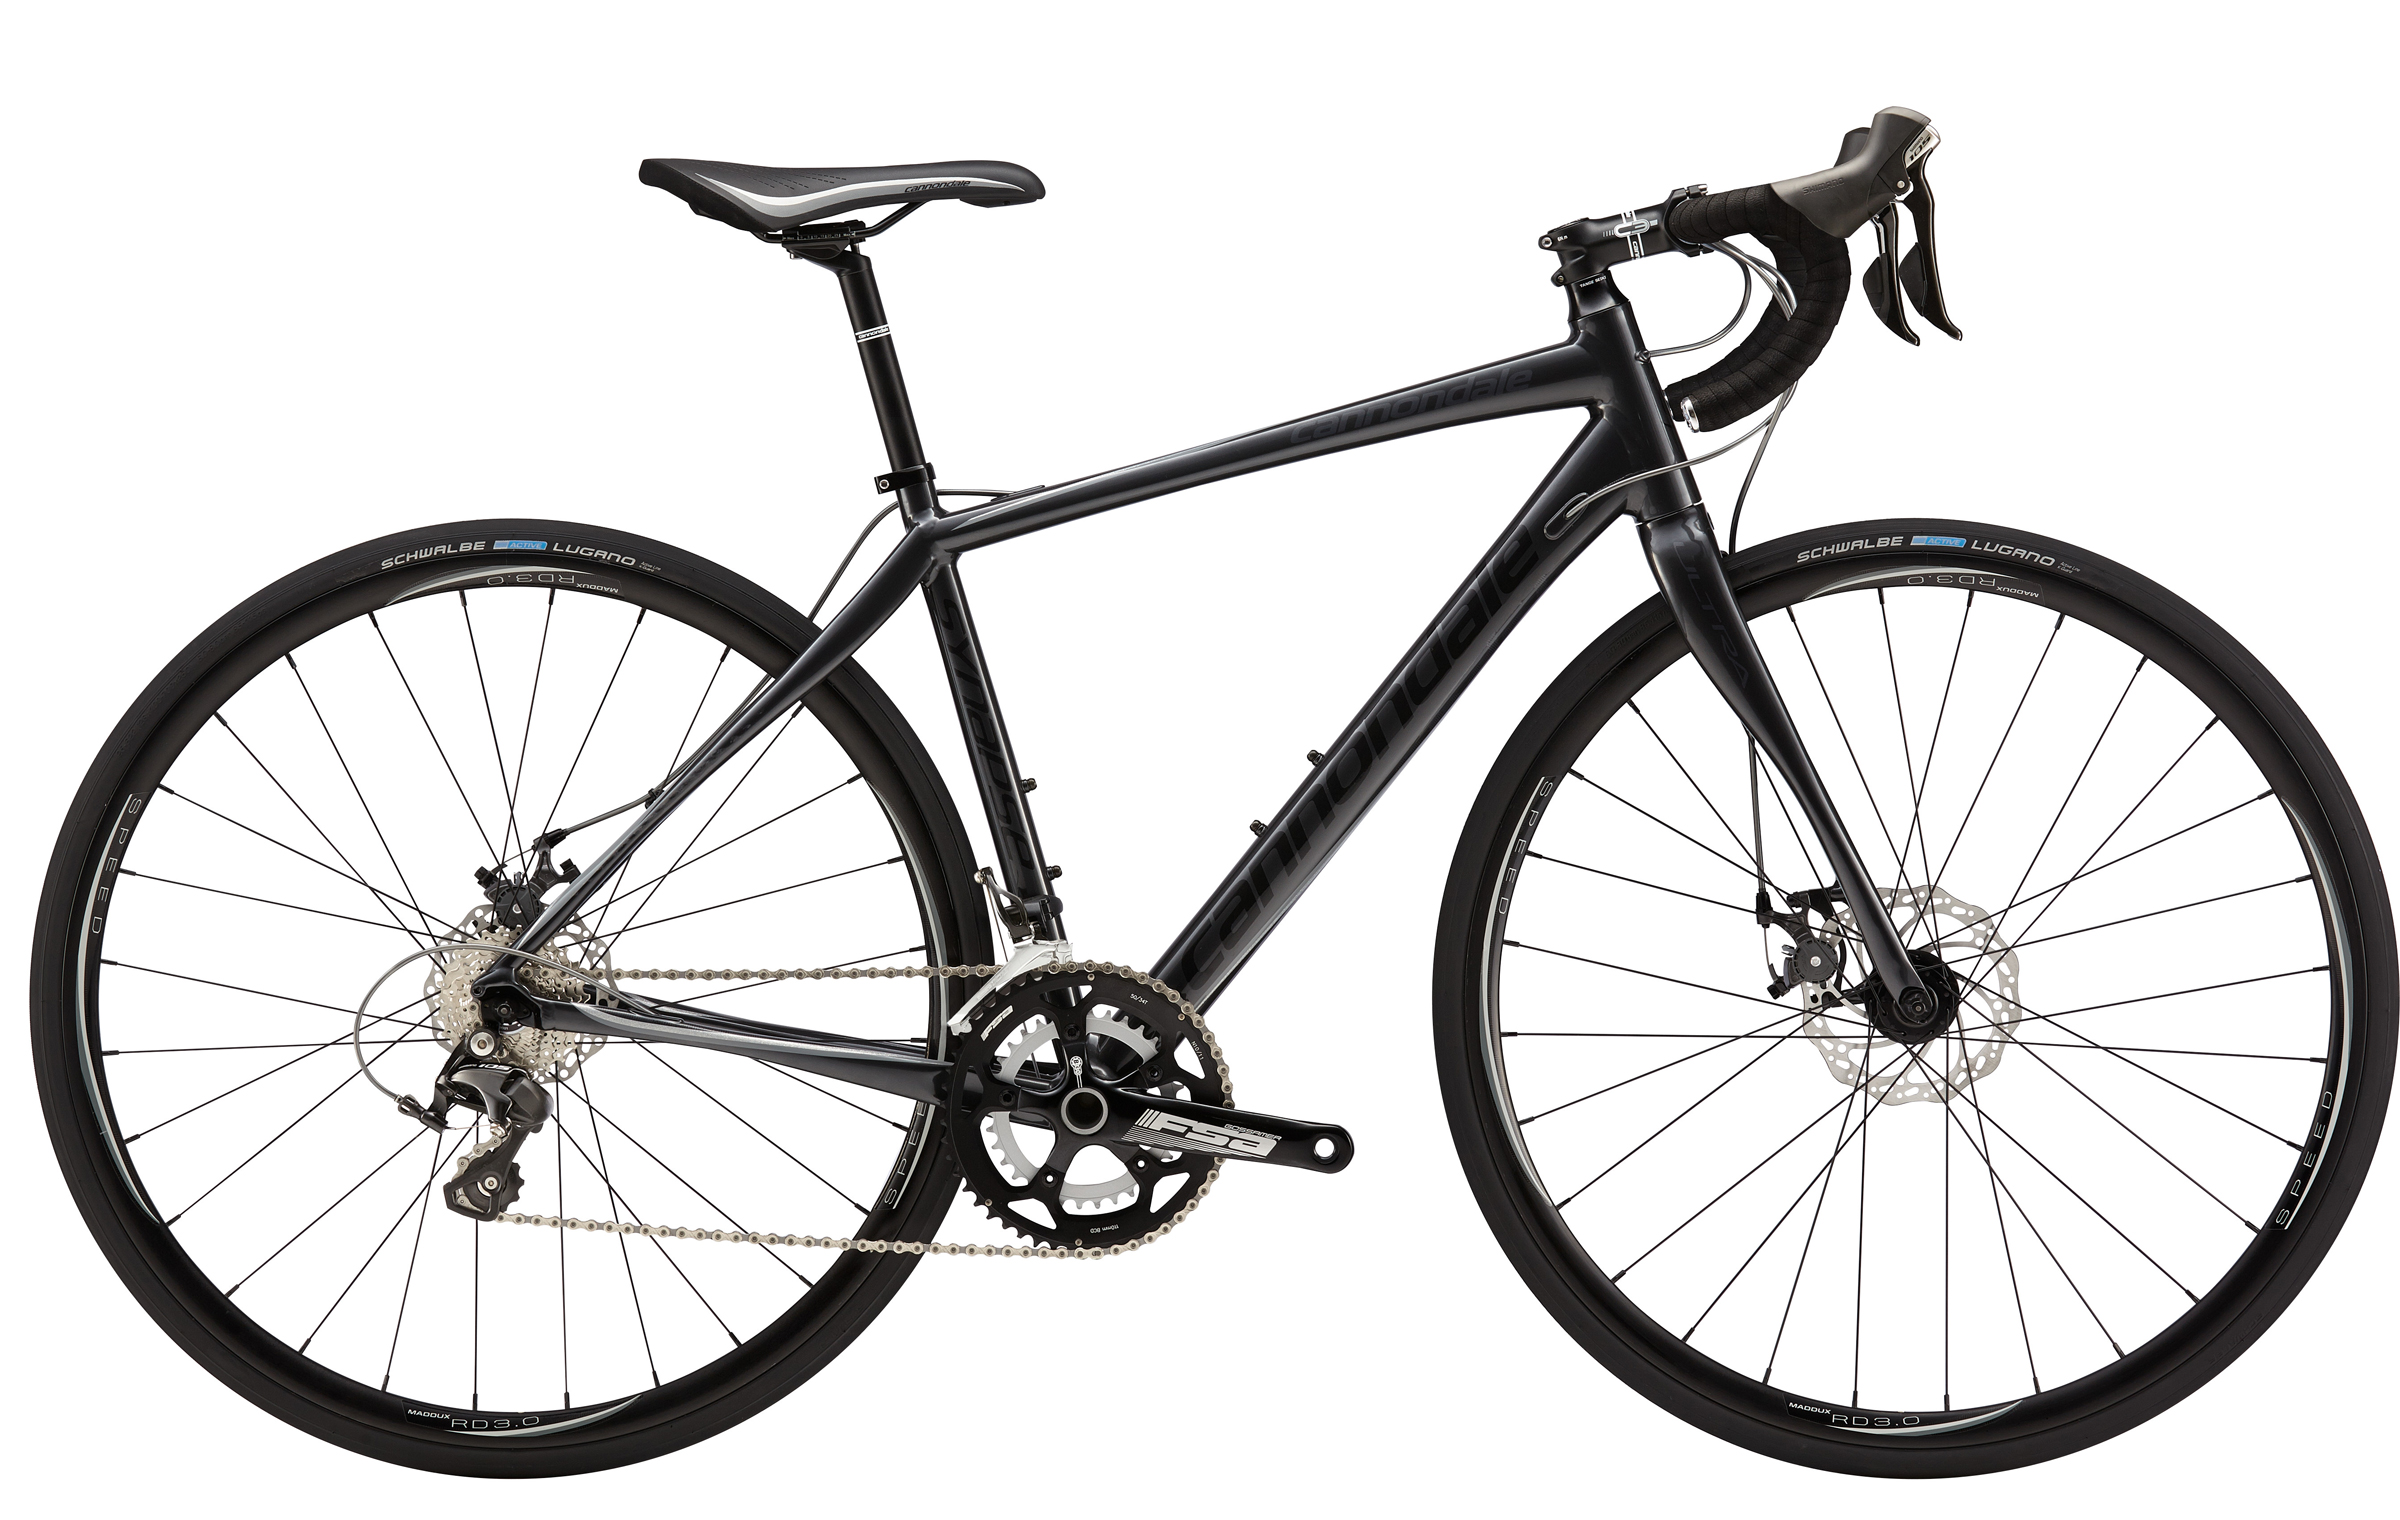 478ed1adfa9 Cannondale Synapse Disc 5 105 - Women's - Skunk River Cycles Ames ...